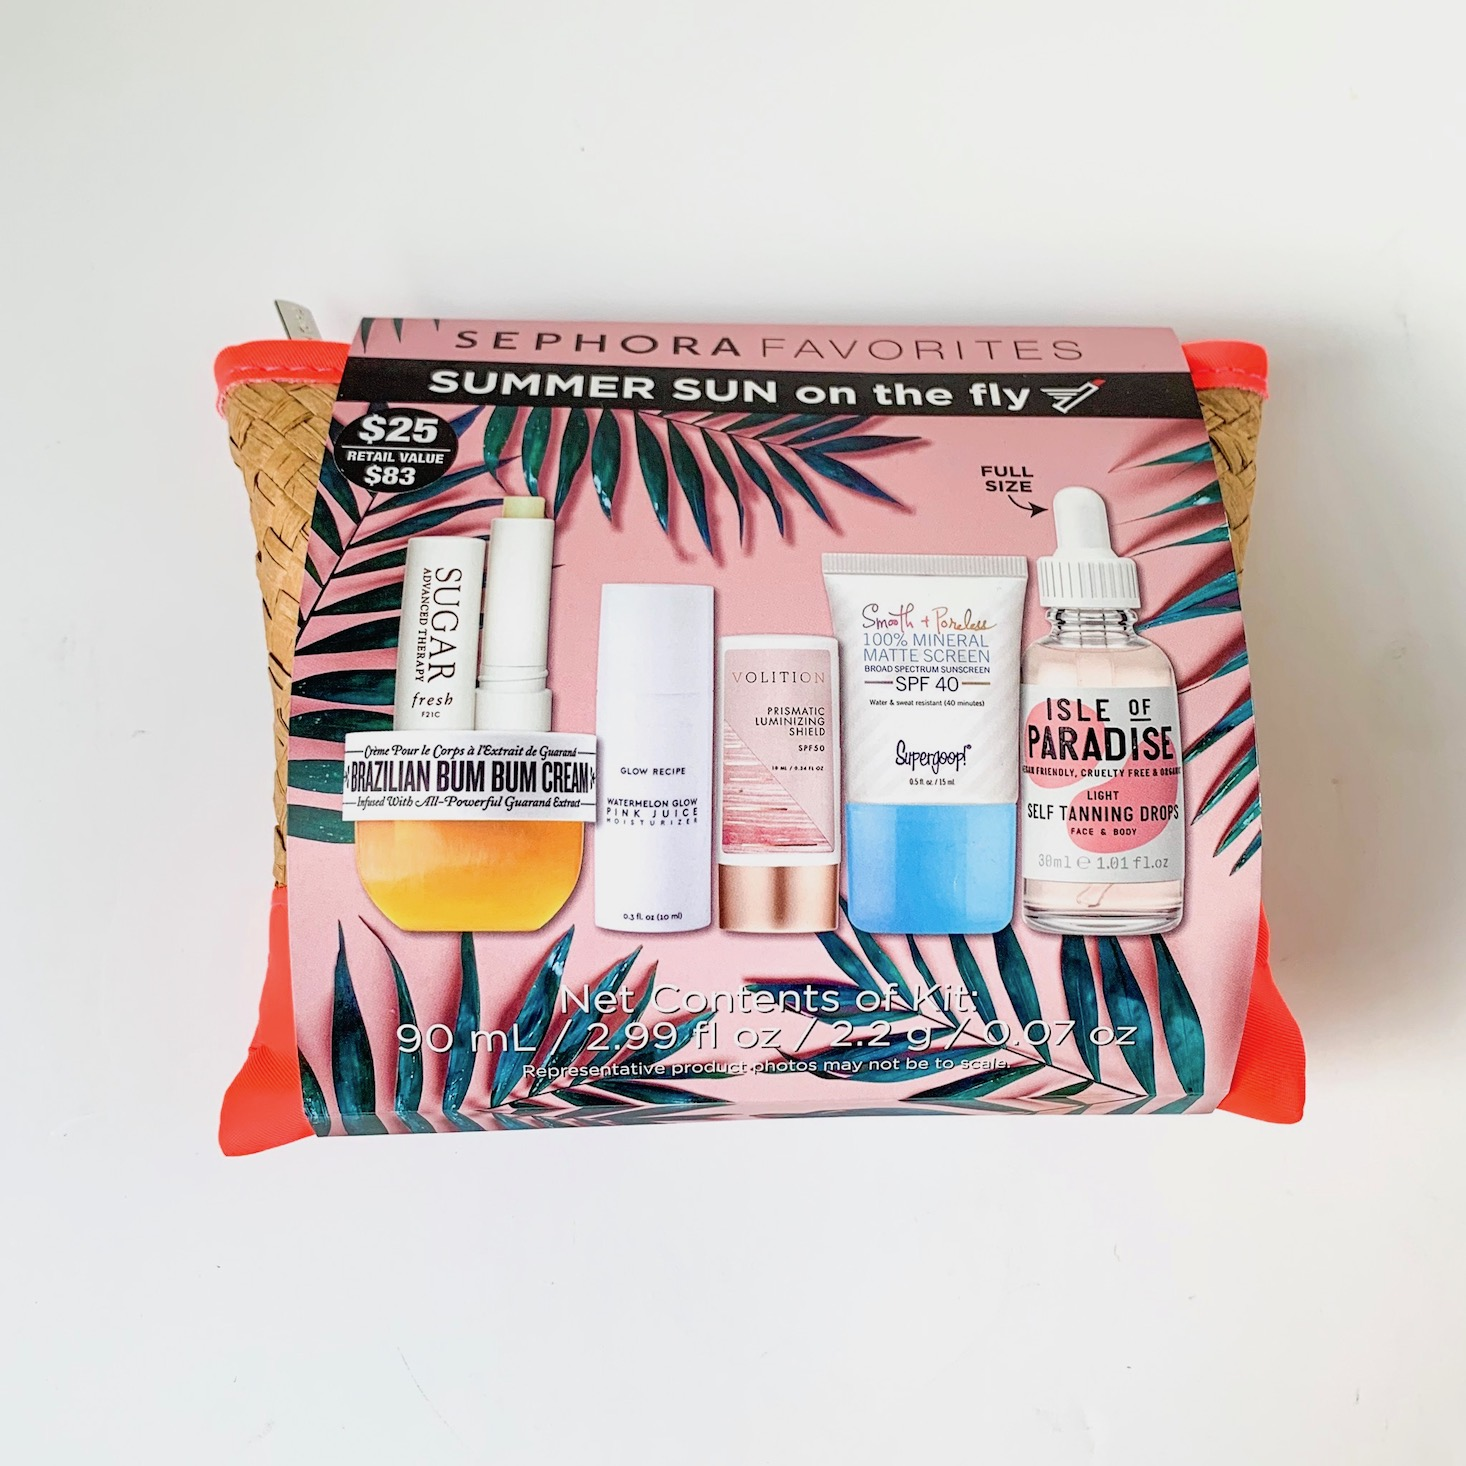 Sephora - Sephora Favorites: Summer Sun On The Fly Review – April 2019